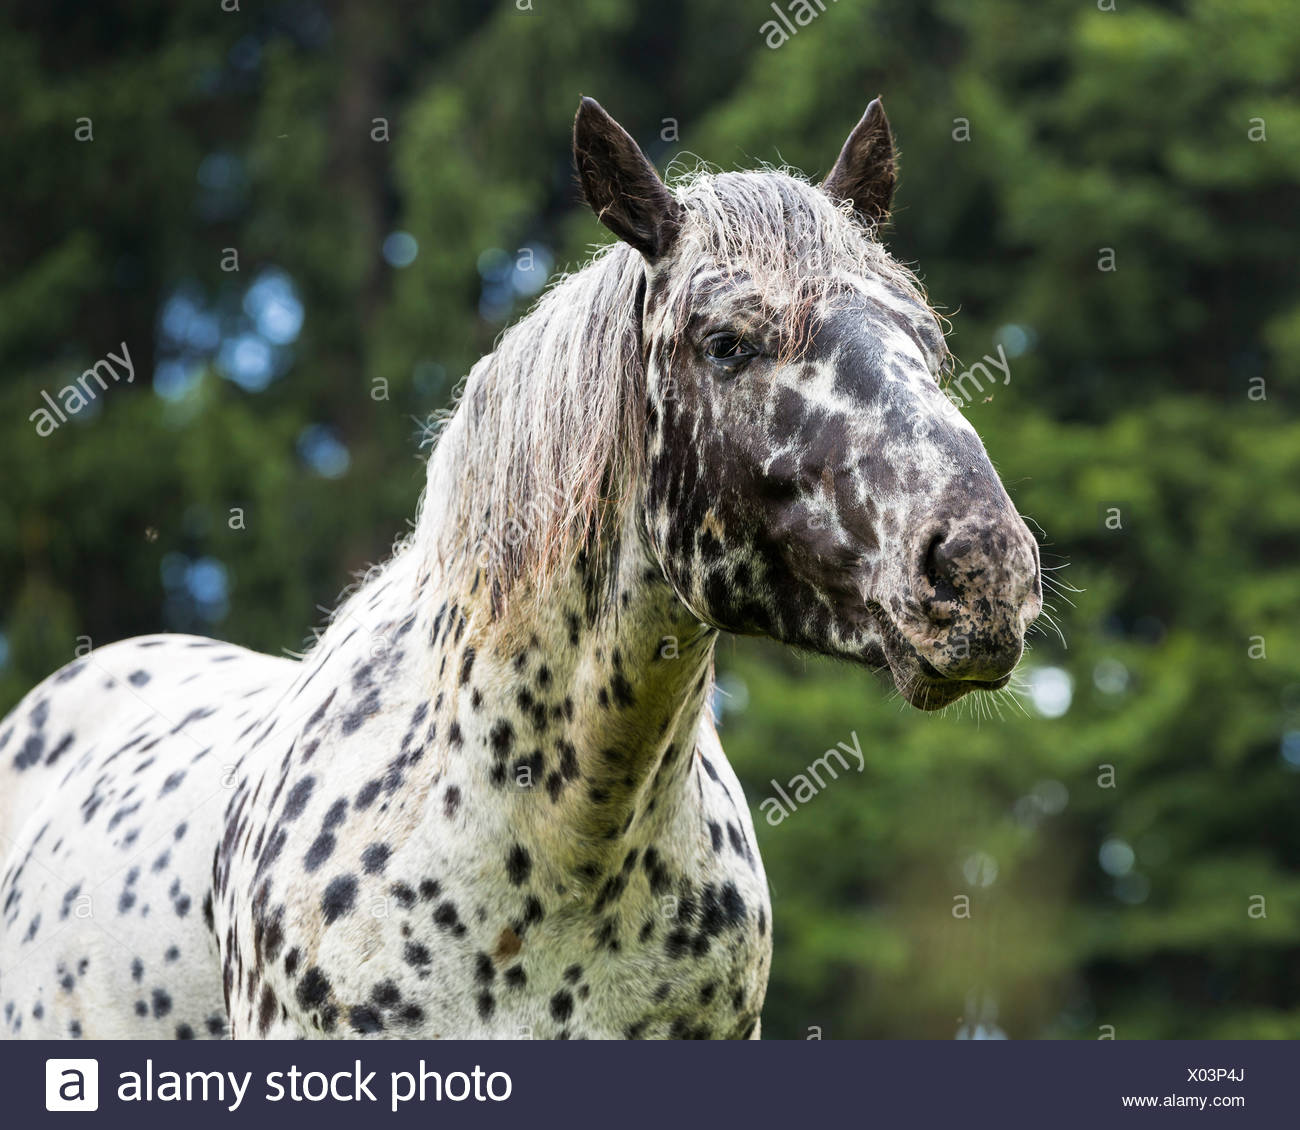 Germany, Horse, Equus, Portait of a gelding, spotted - Stock Image